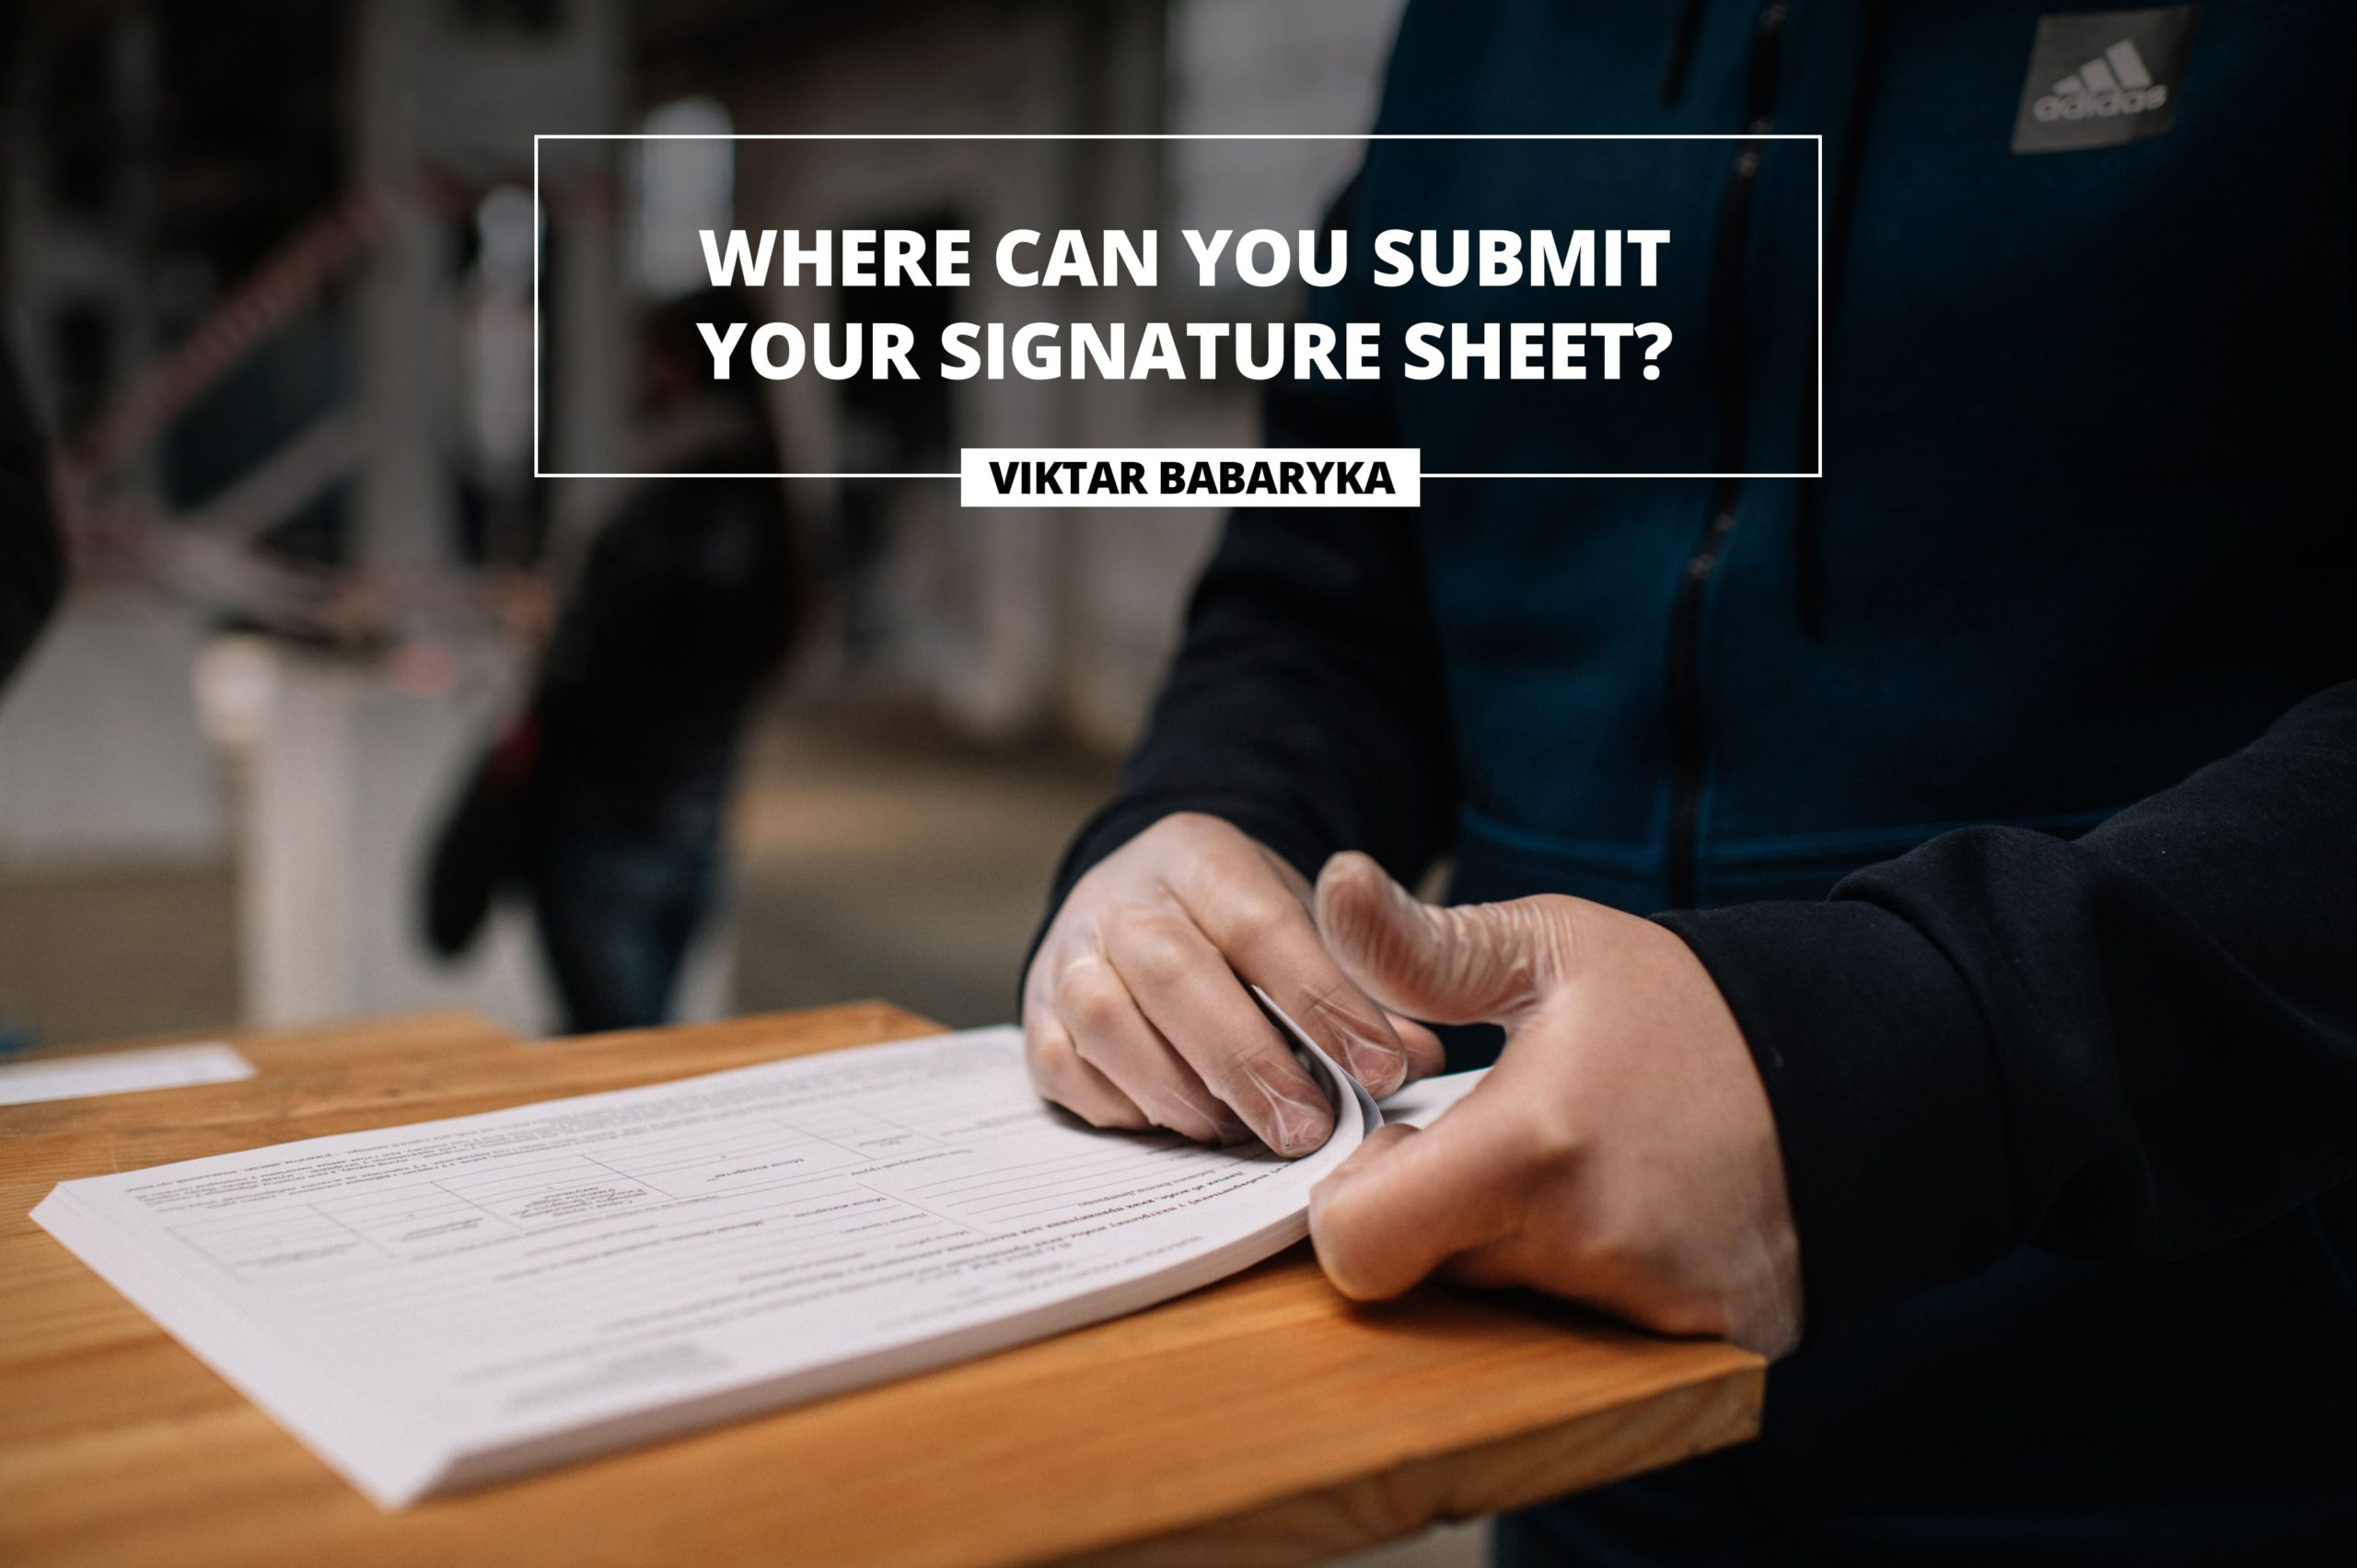 WHERE CAN YOU SUBMIT YOUR SIGNATURE SHEET